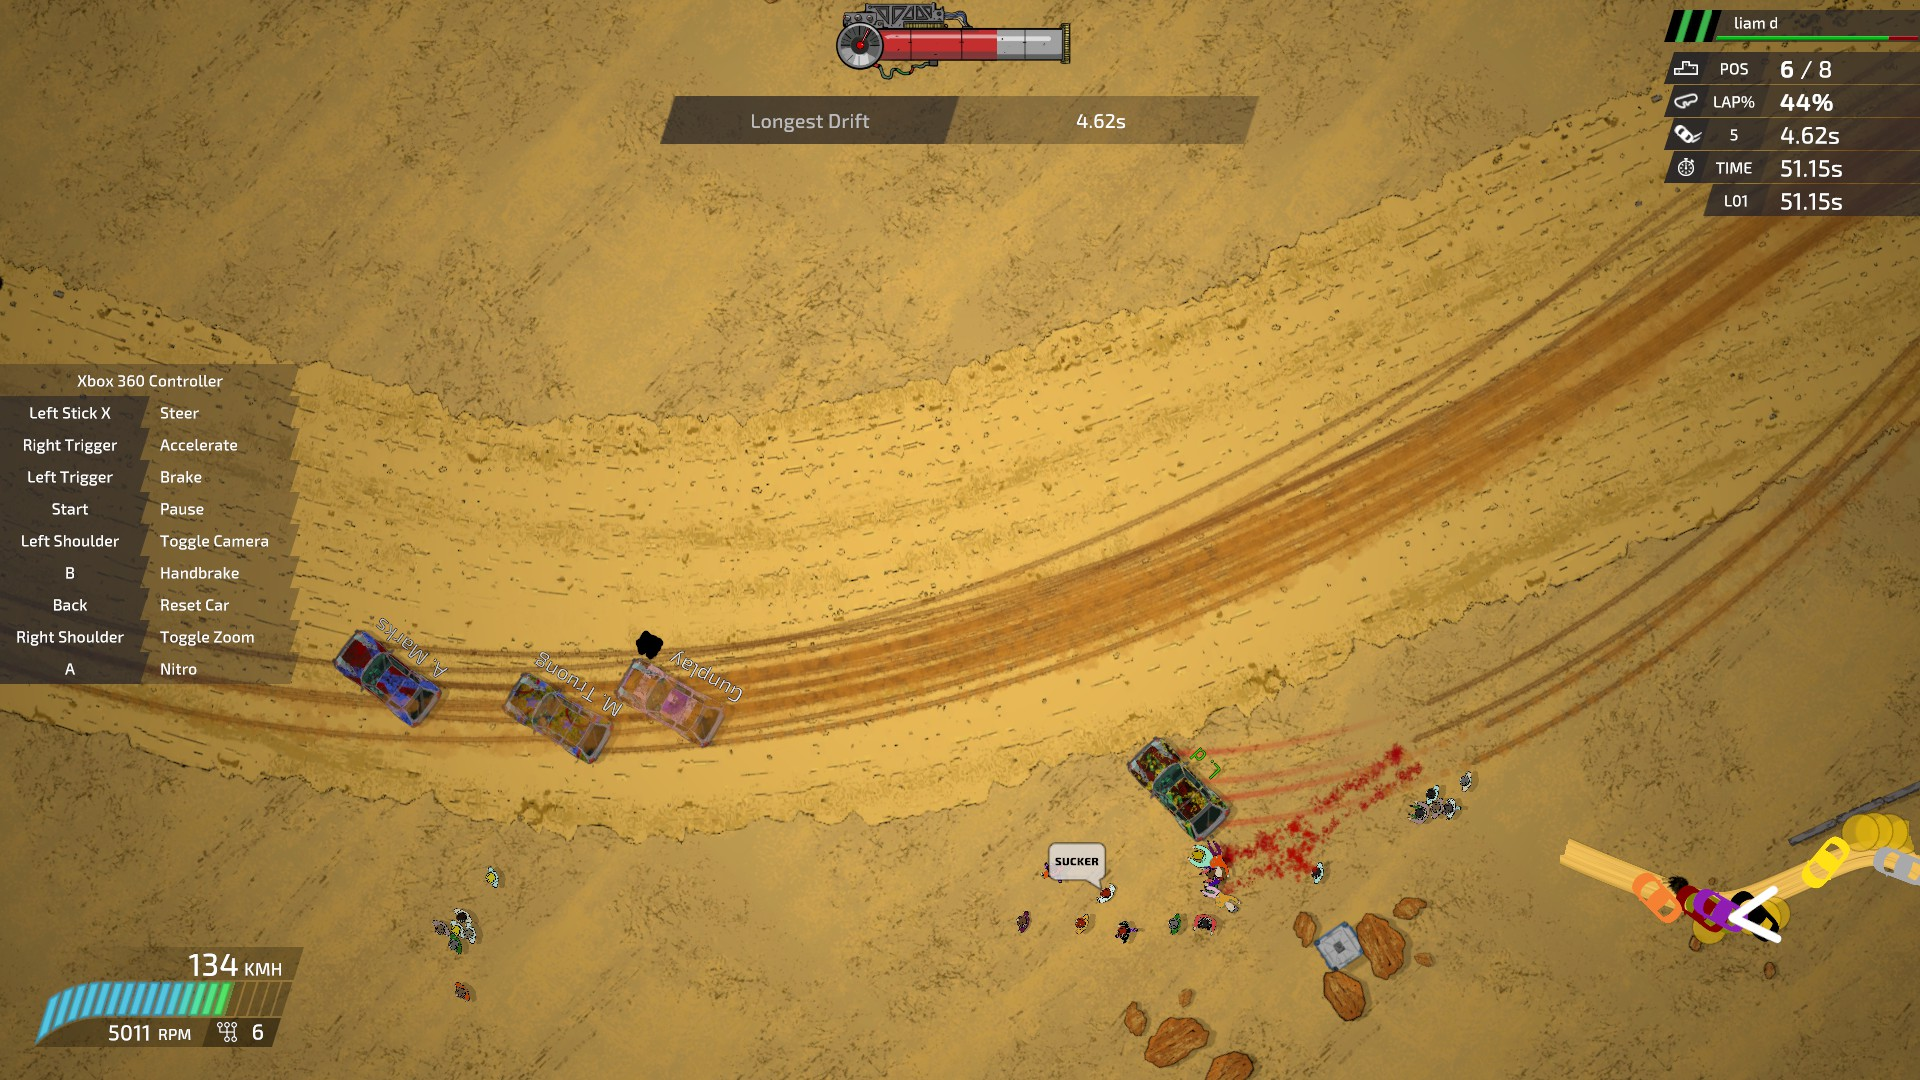 Extreme Top Down Racing Game Bloody Rally Show Is Out